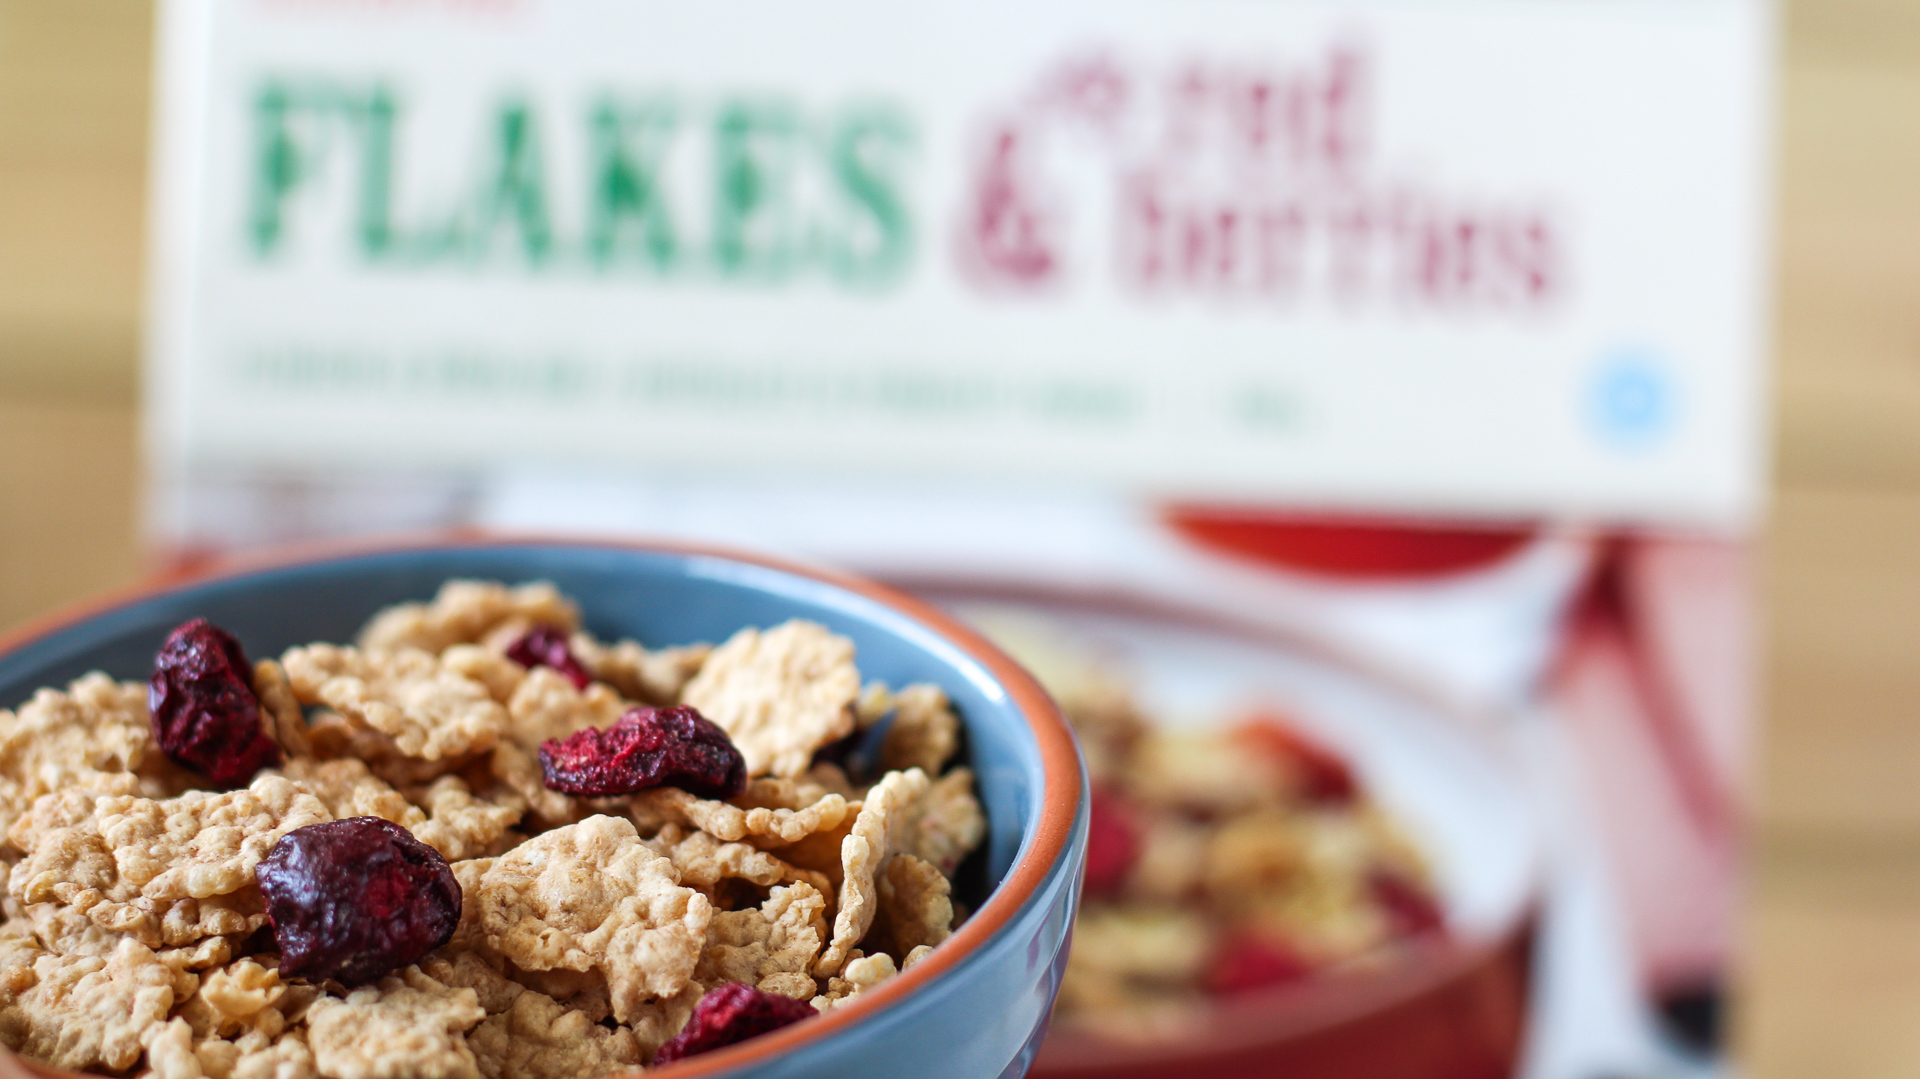 Semper glutenfrei Flakes & Red Berries